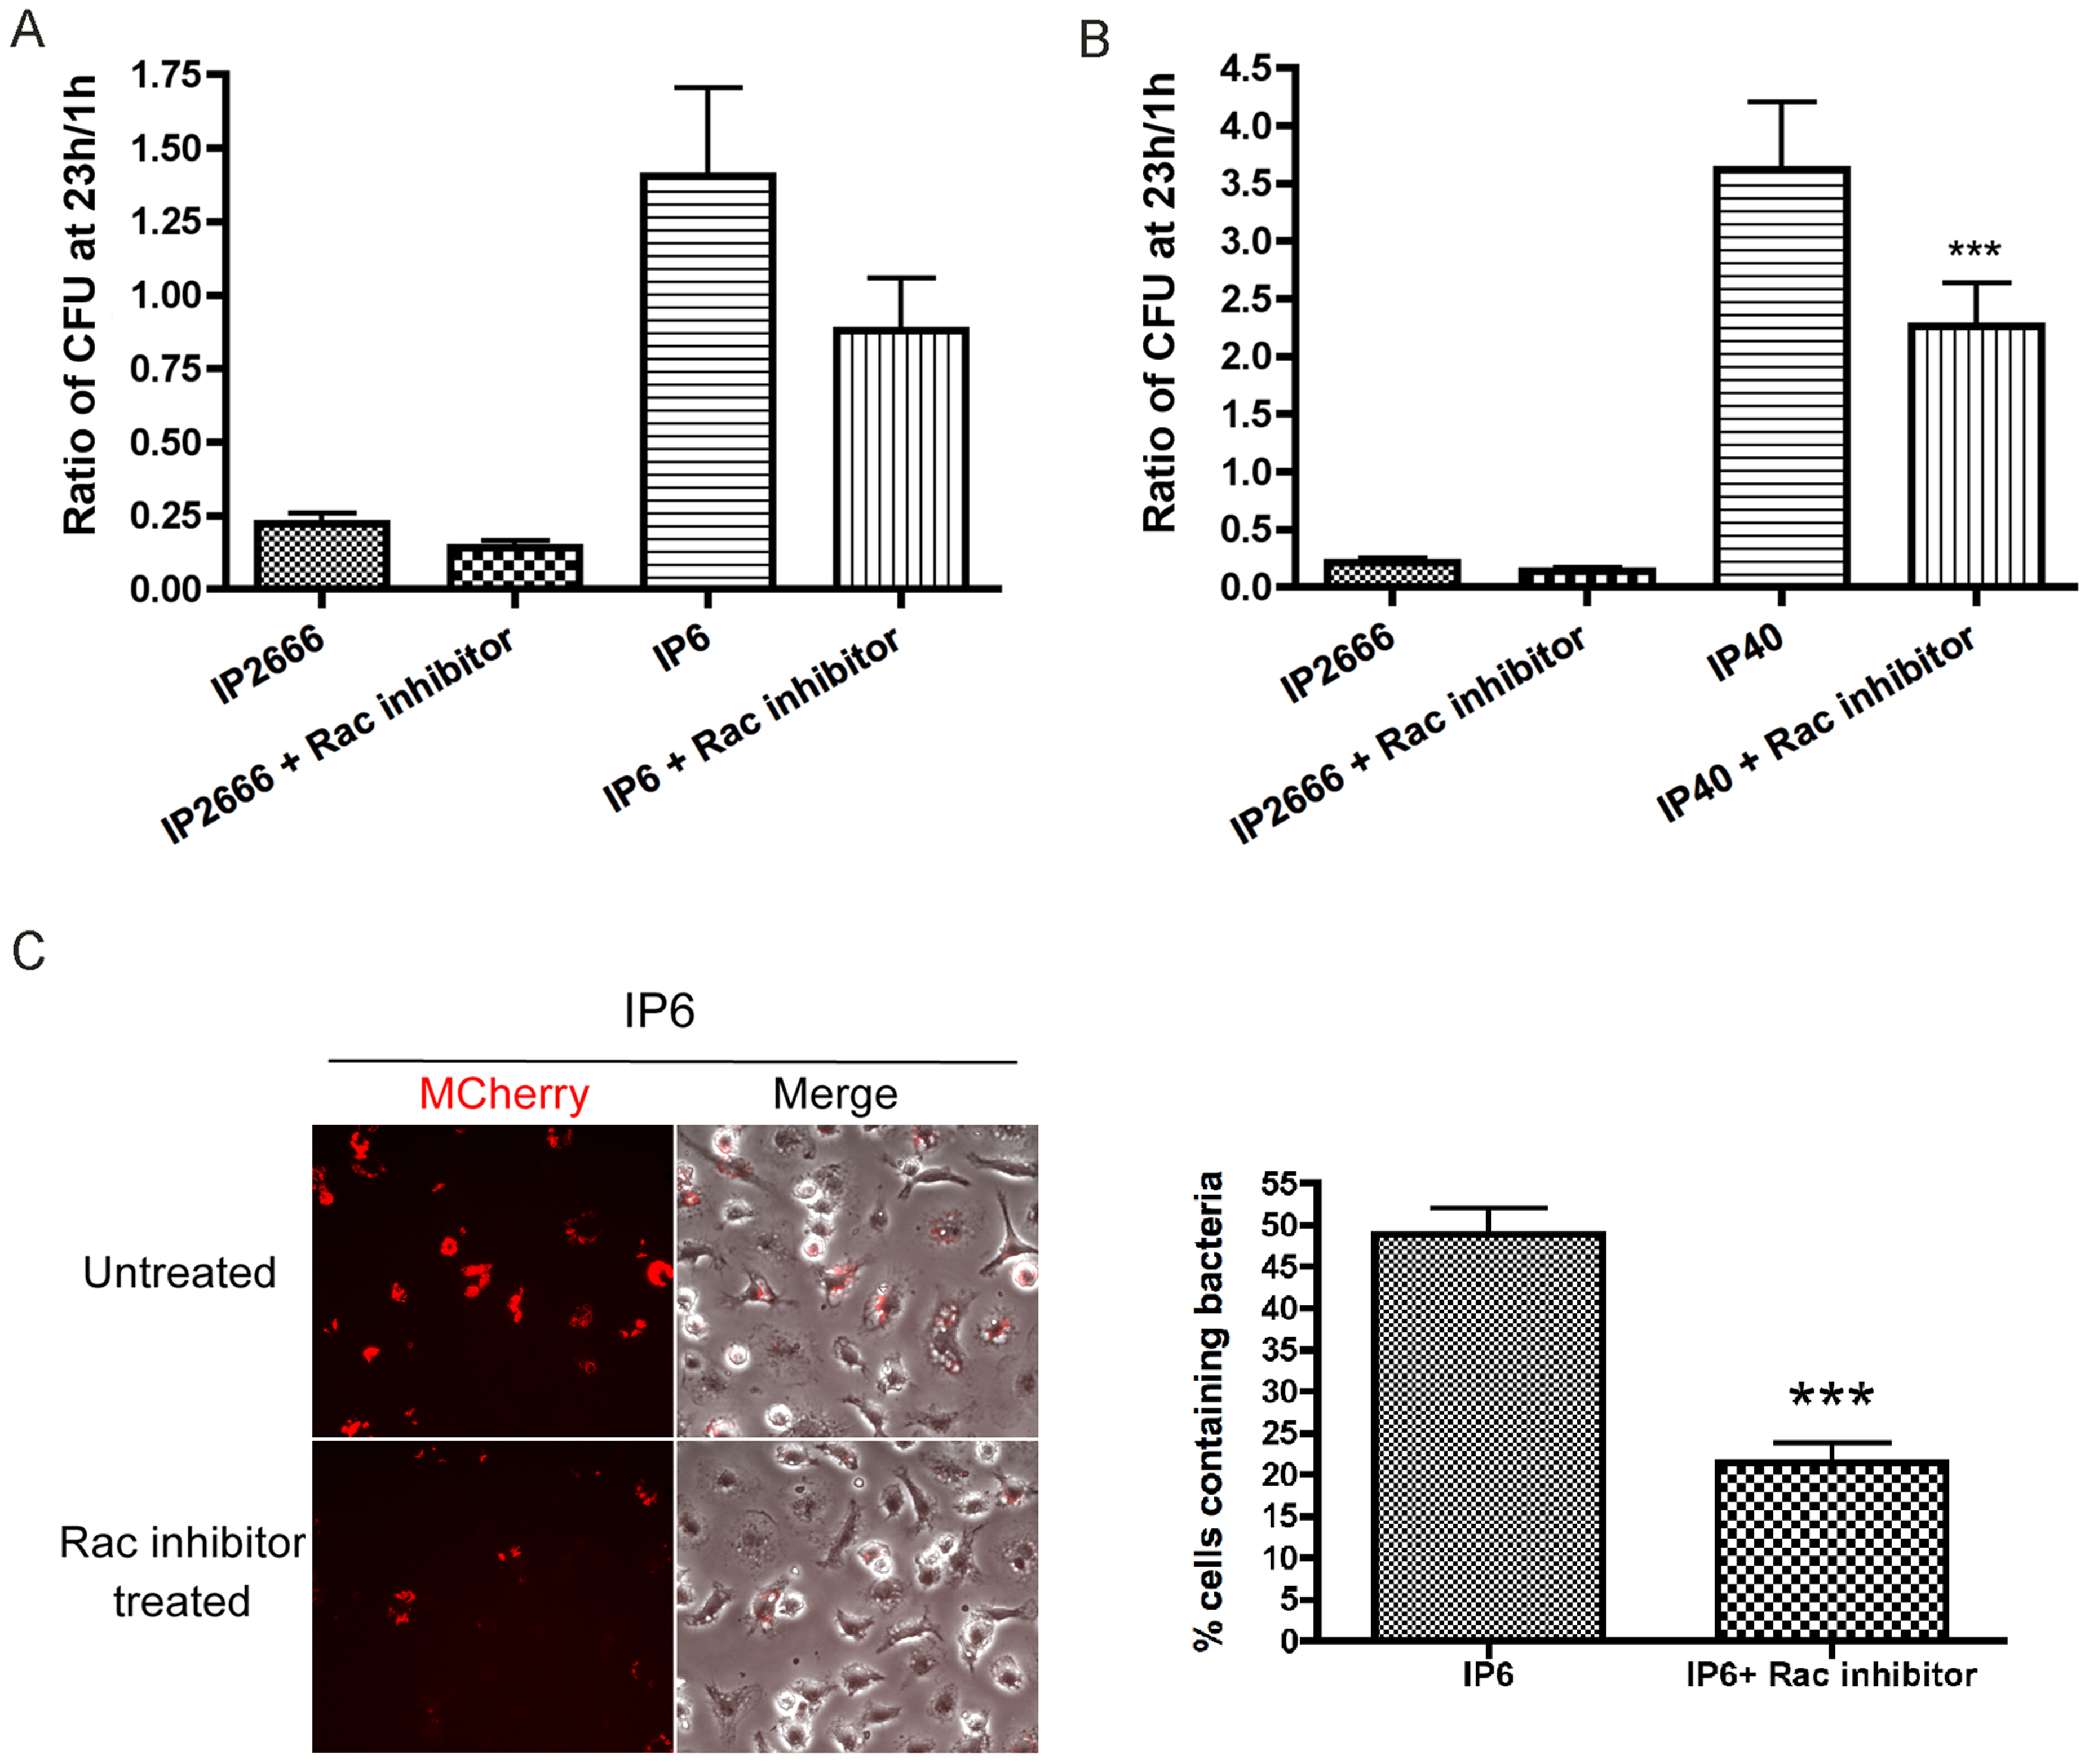 Survival of different <i>Y. pseudotuberculosis</i> strains inside macrophages, in the presence or absence of Rac inhibitor NSC23766.